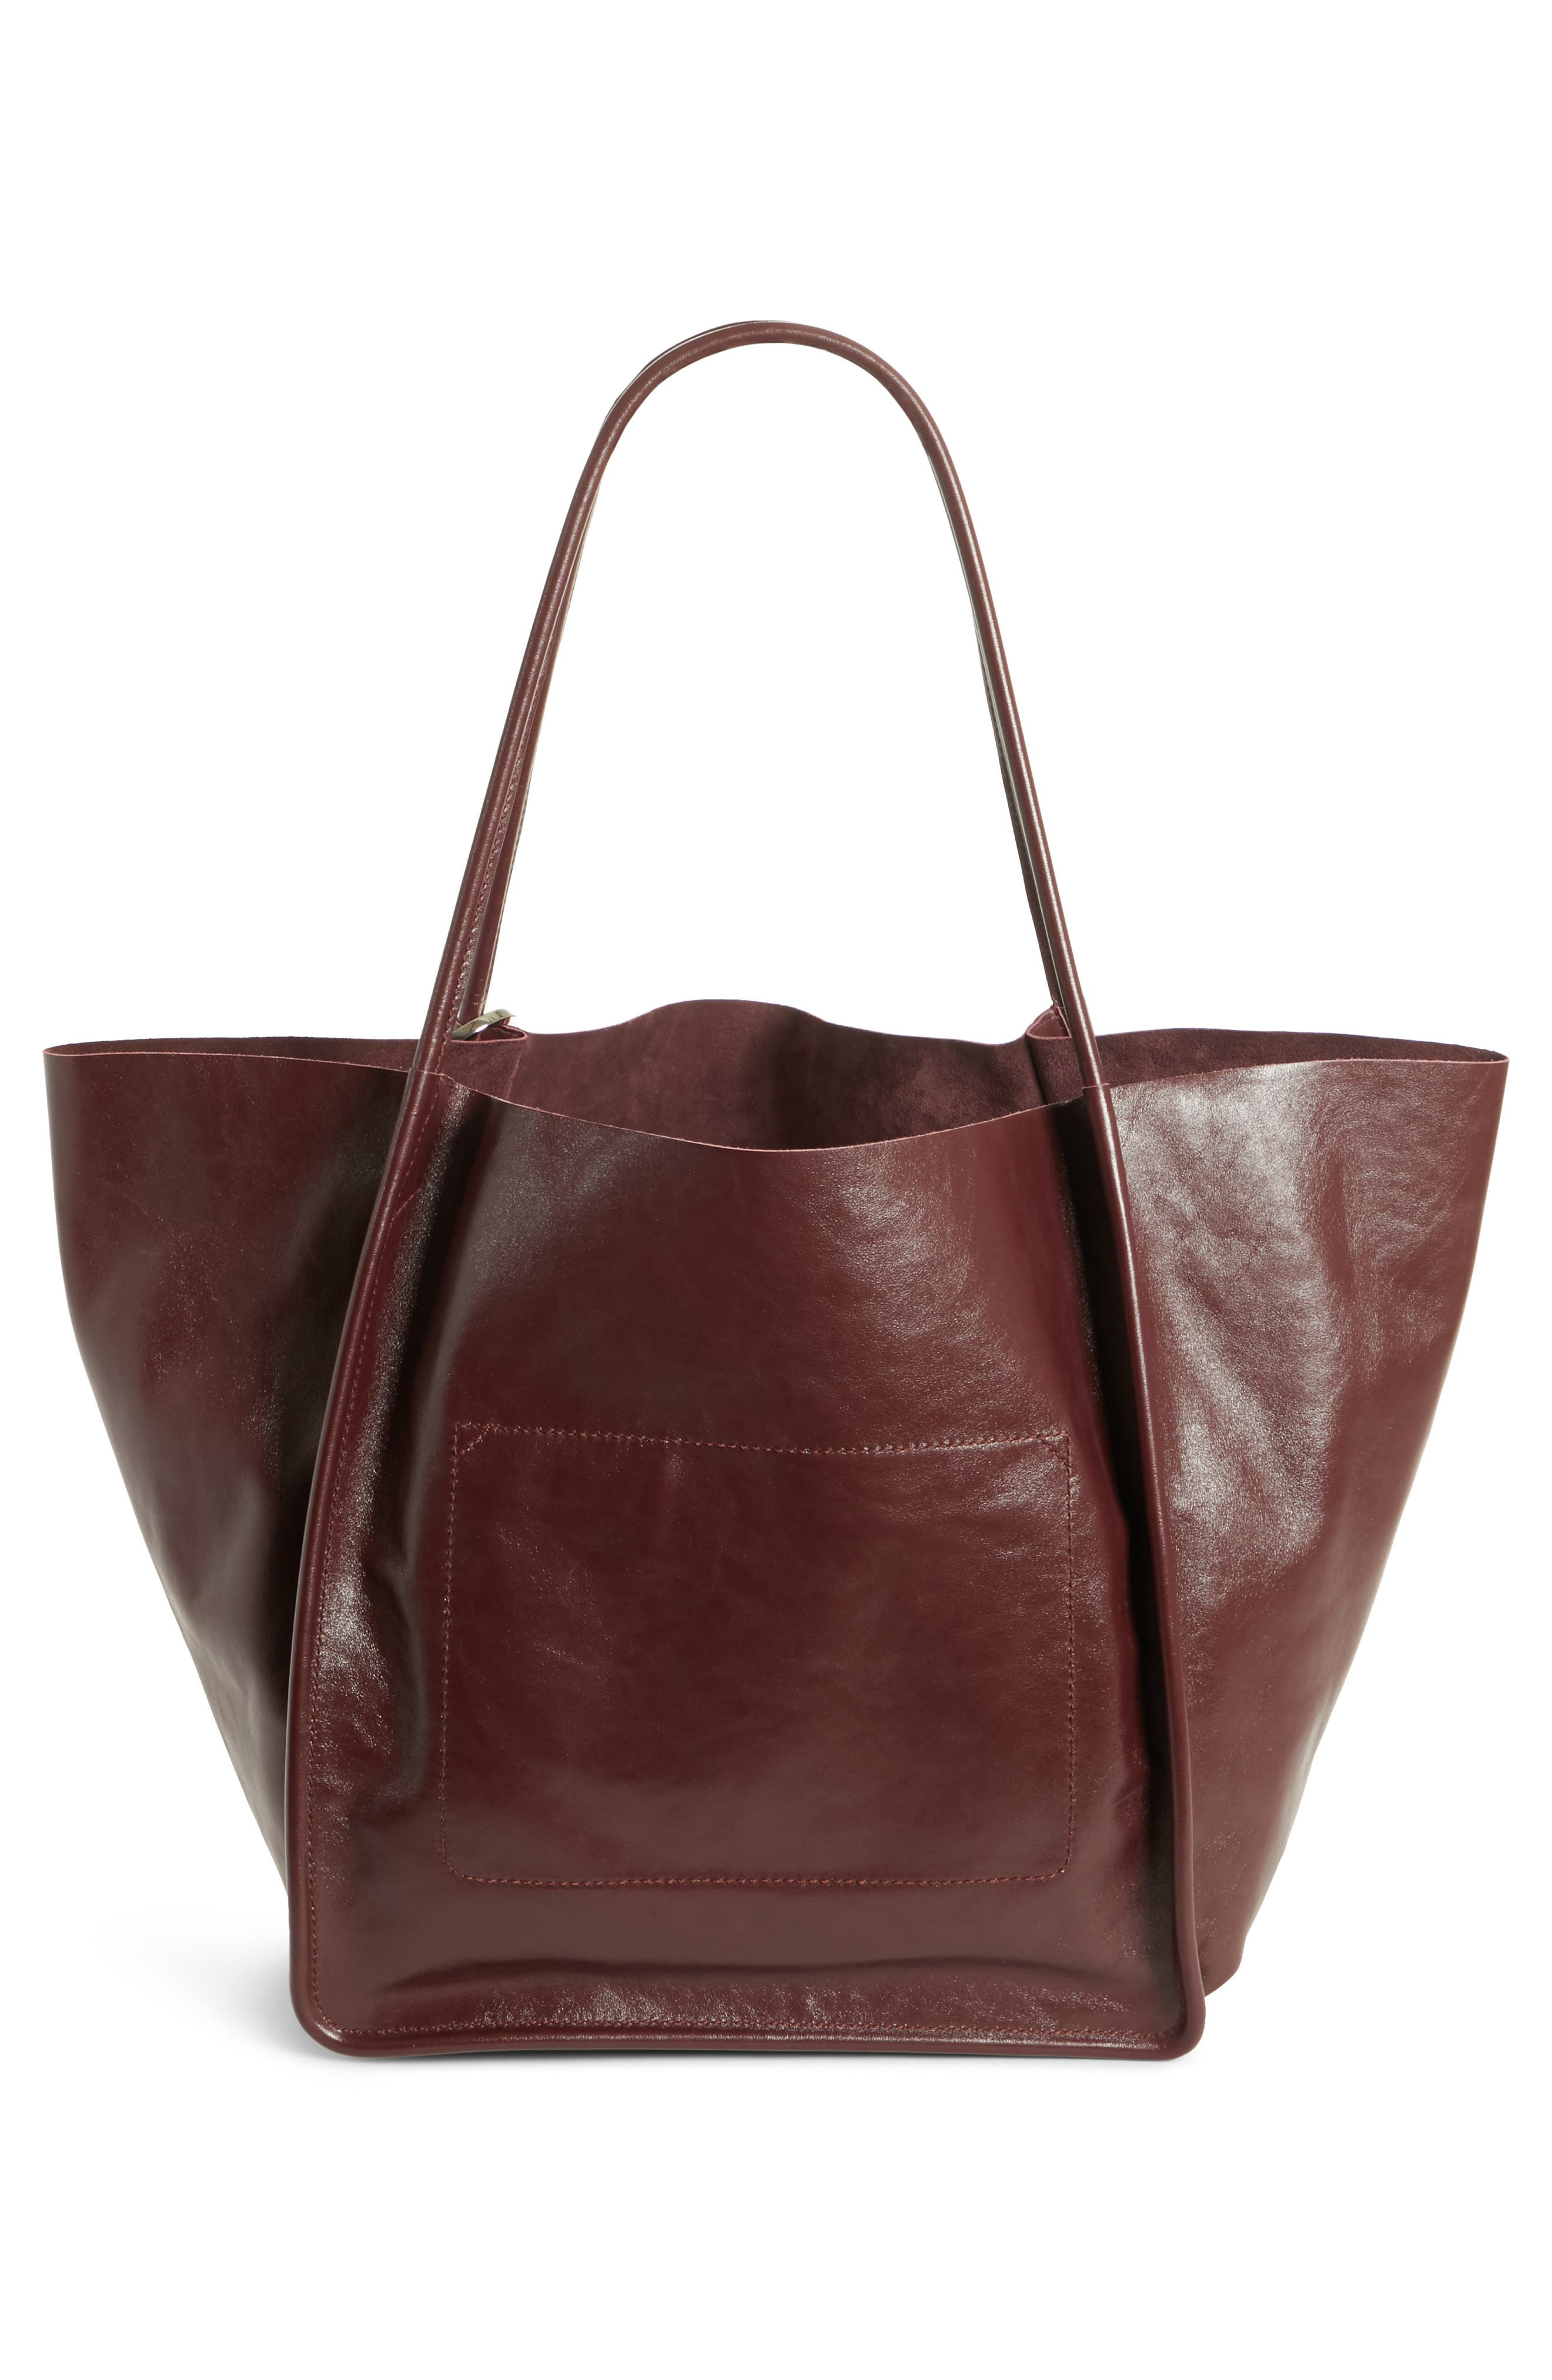 PROENZA SCHOULER, Extra Large Leather Tote, Alternate thumbnail 2, color, 848